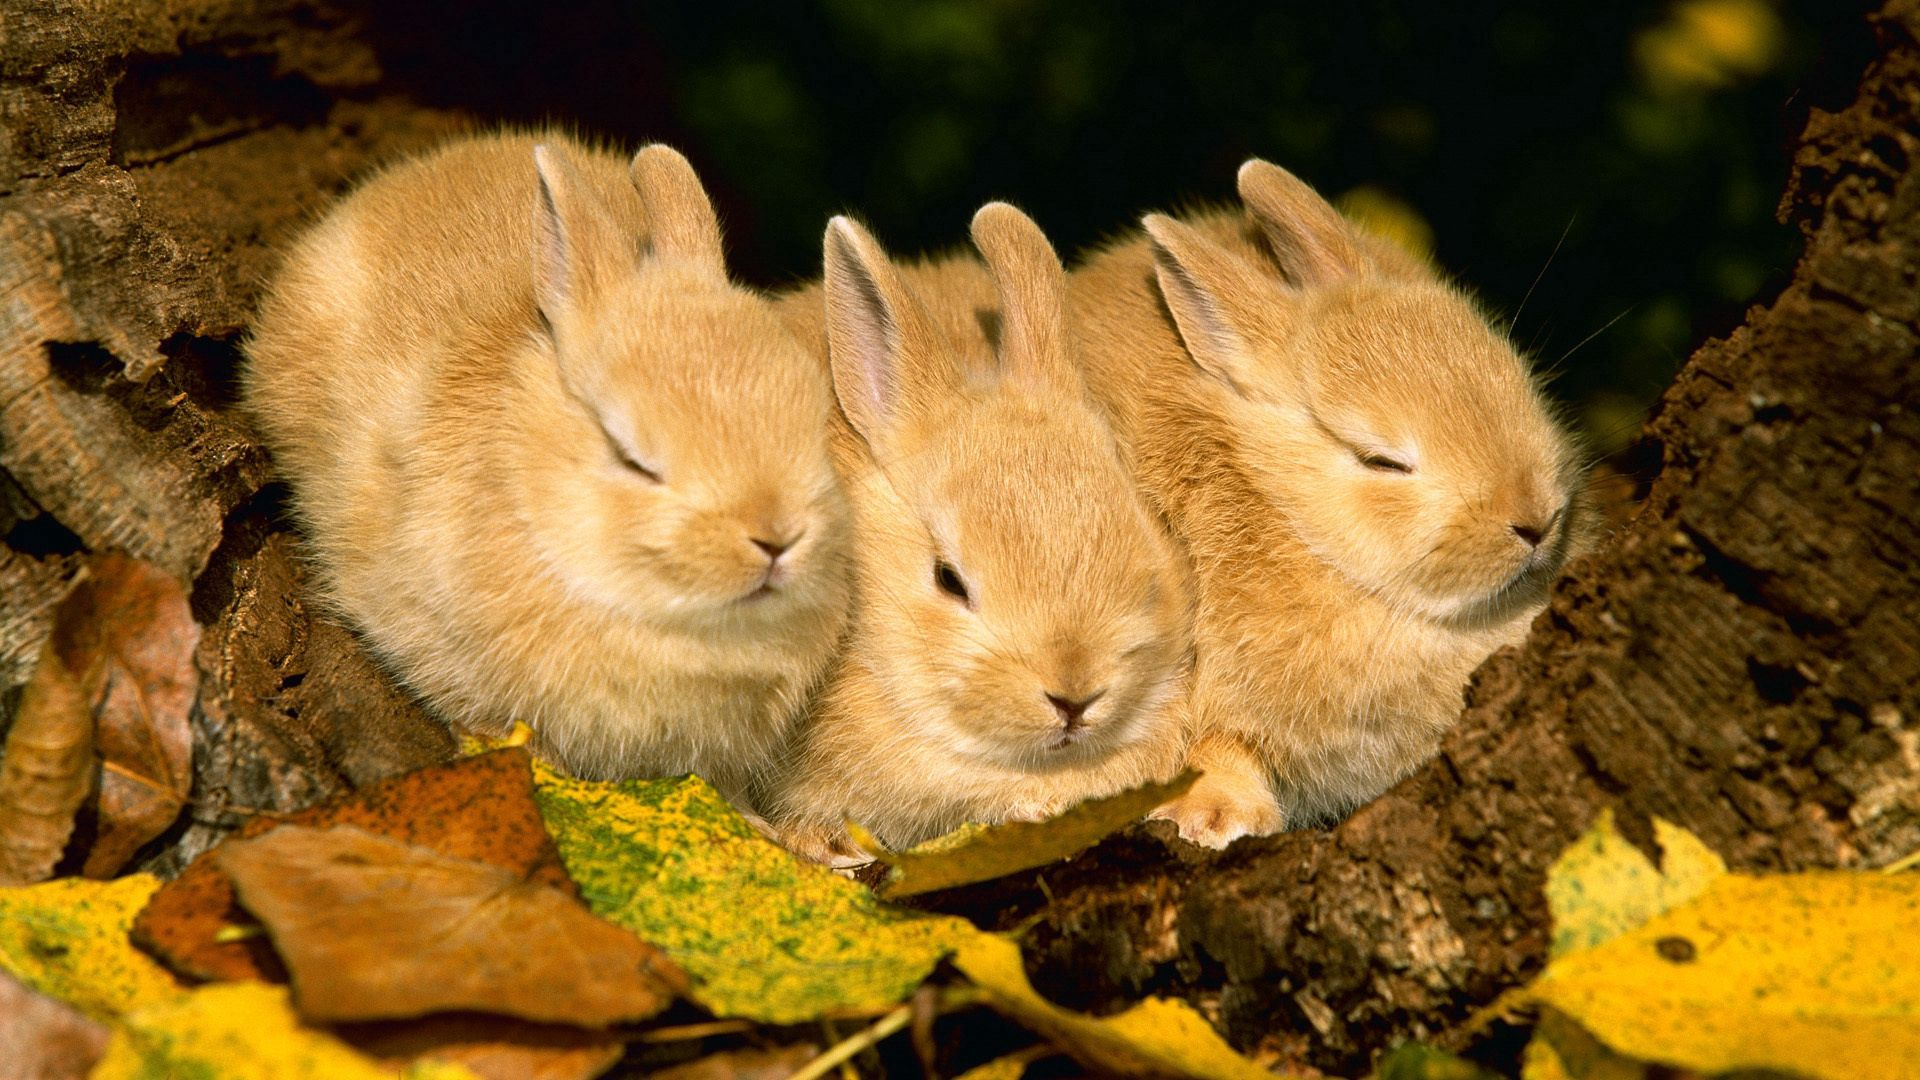 143100 download wallpaper Animals, Rabbits, Sleep, Dream, Three, Cute screensavers and pictures for free